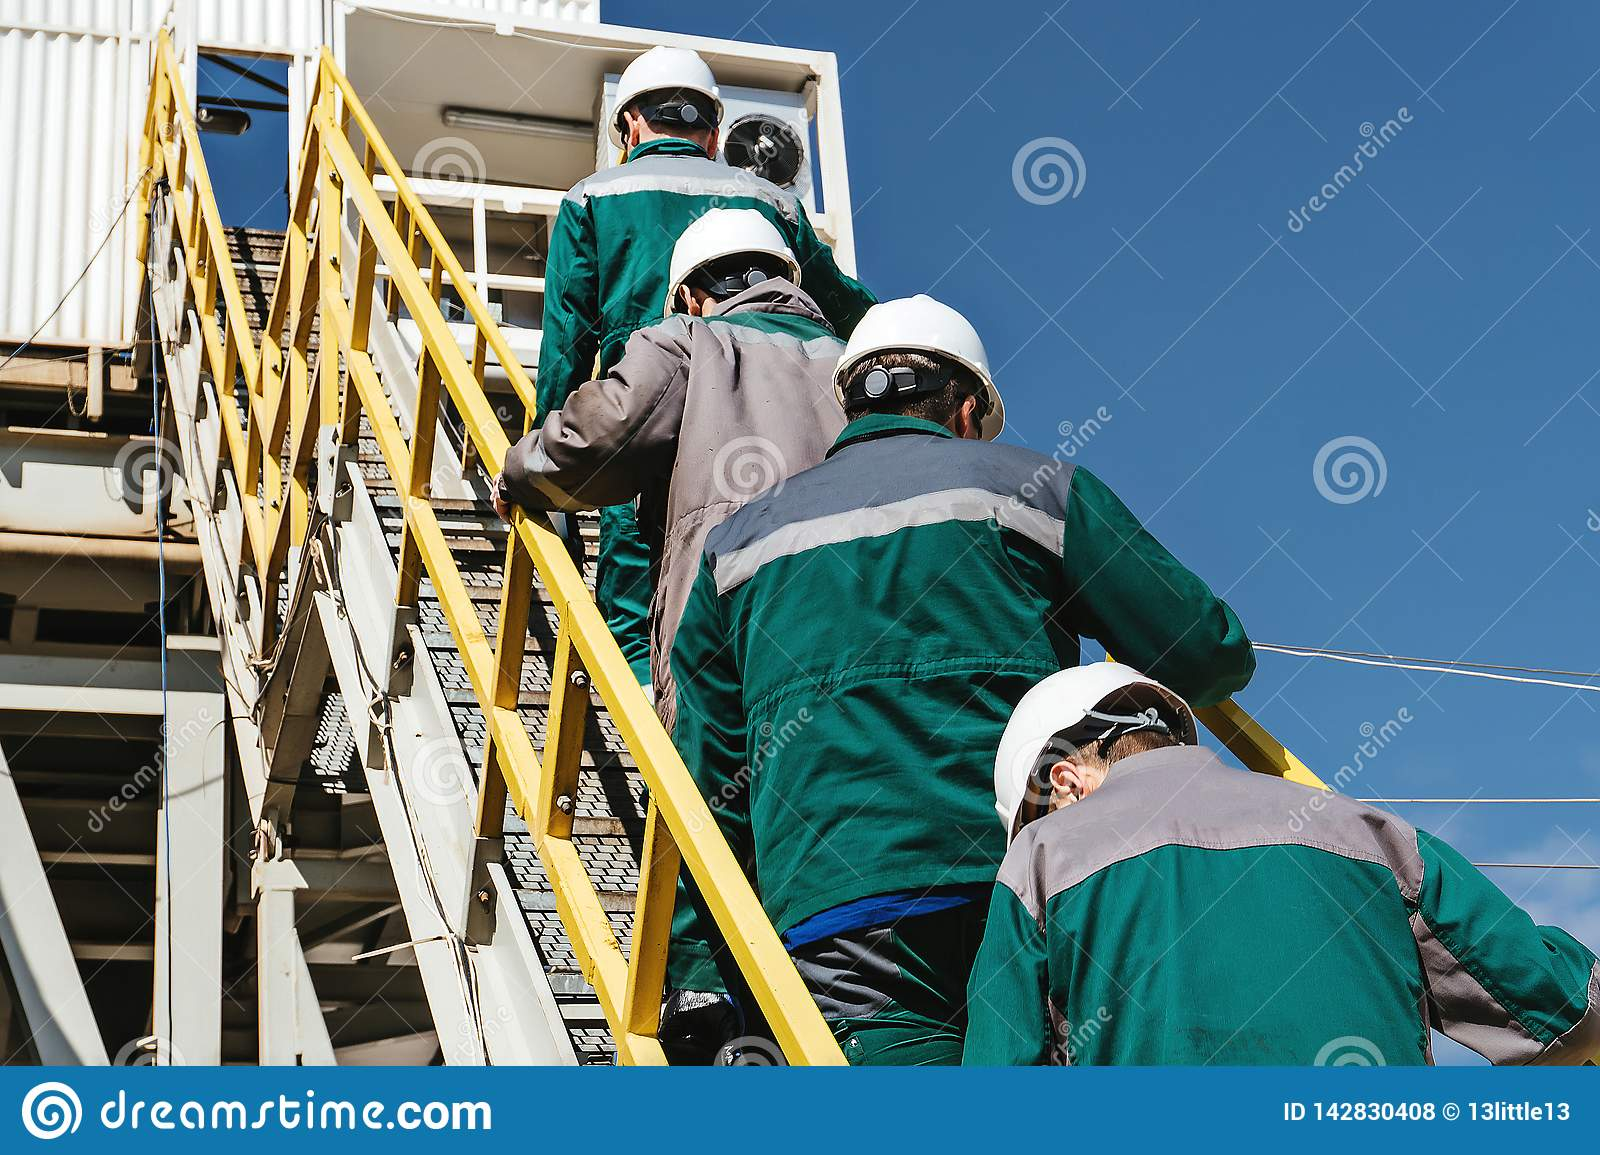 Workers go to the oil rig